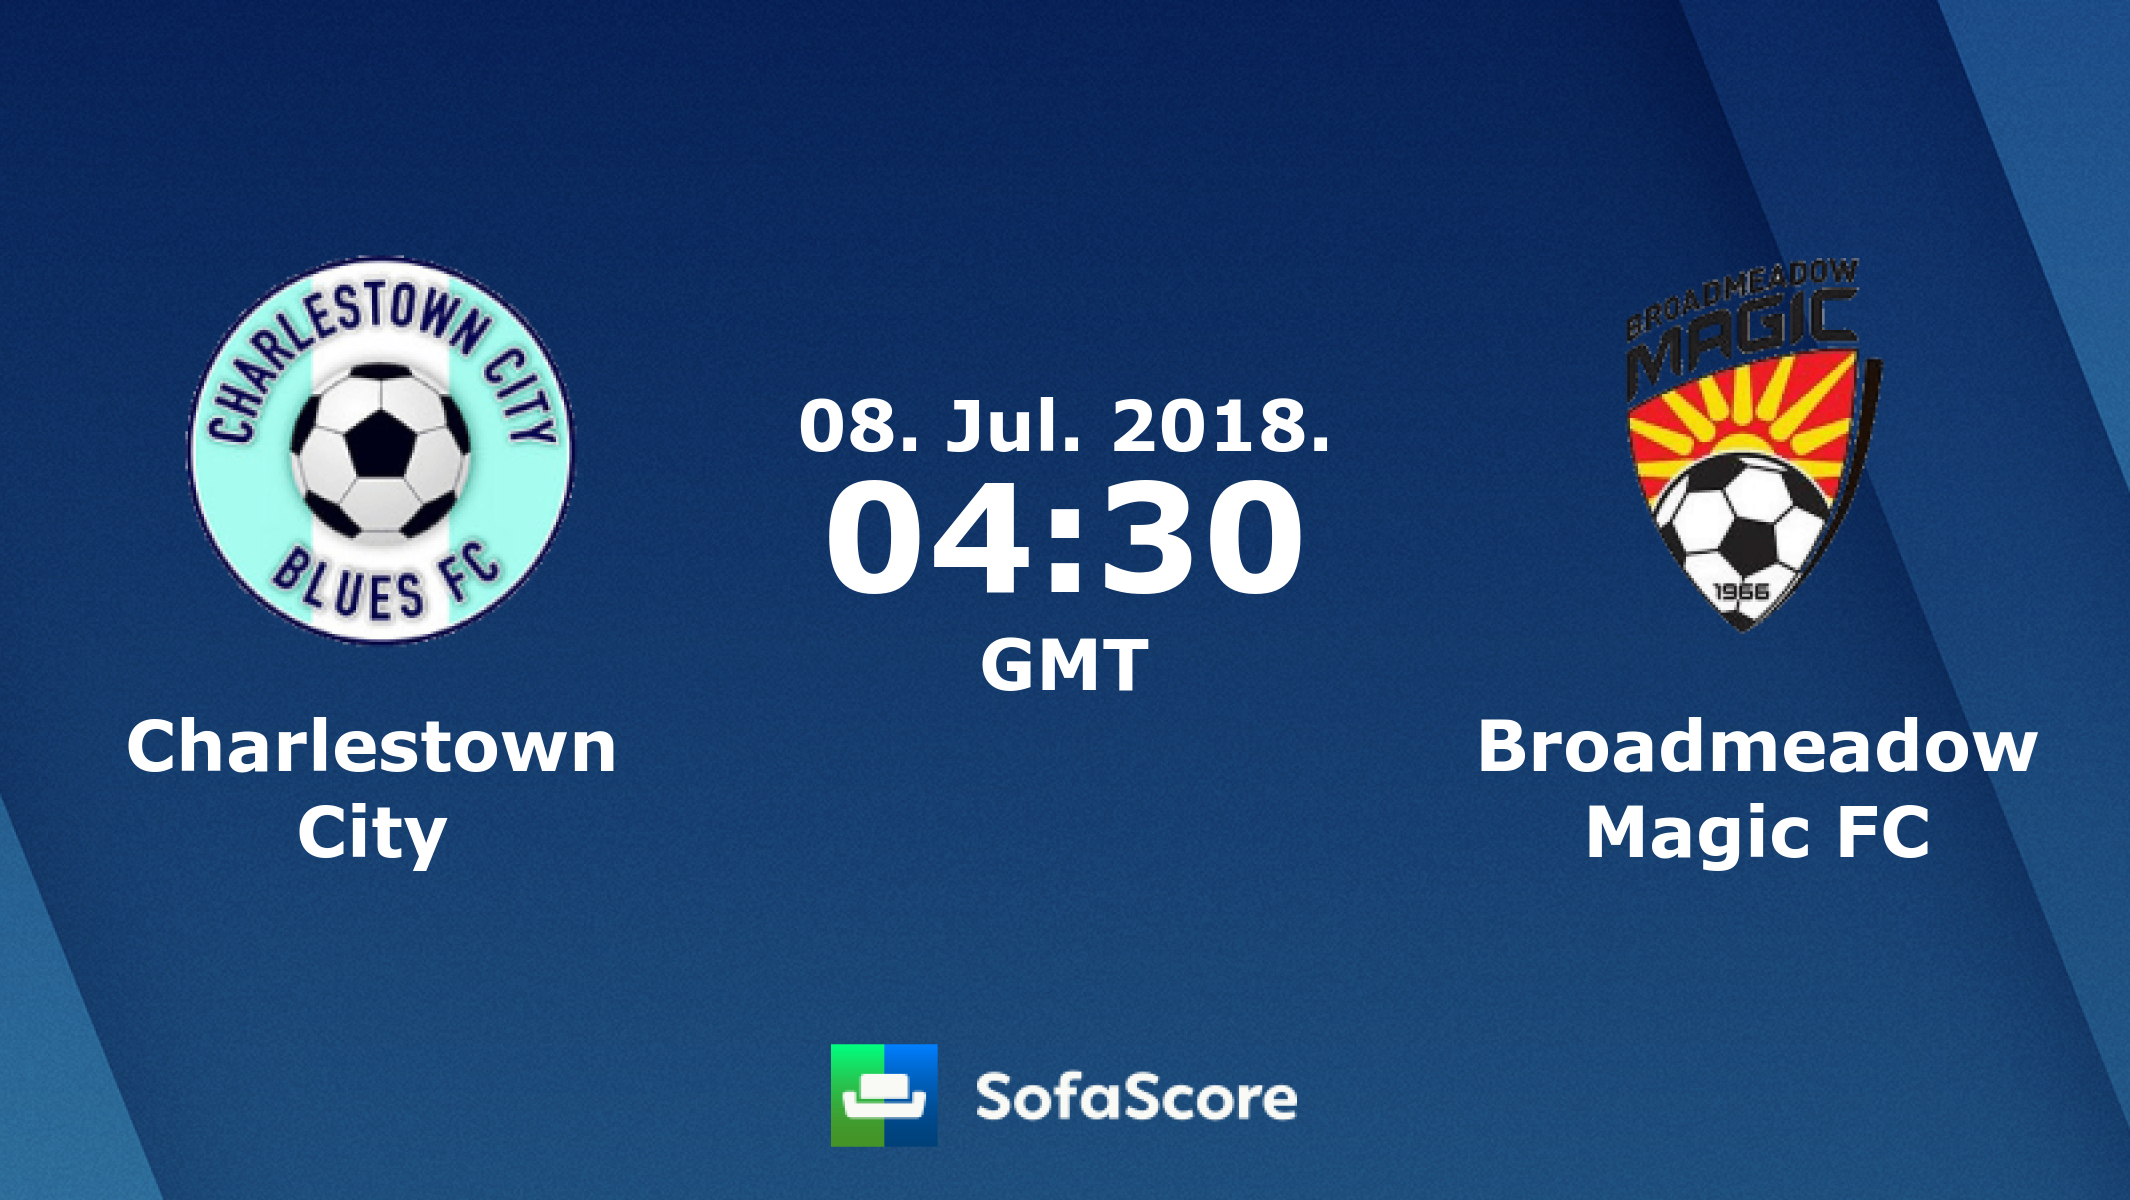 sofascore table tennis wall mounted sofa bed rv charlestown city broadmeadow magic fc live score, video ...